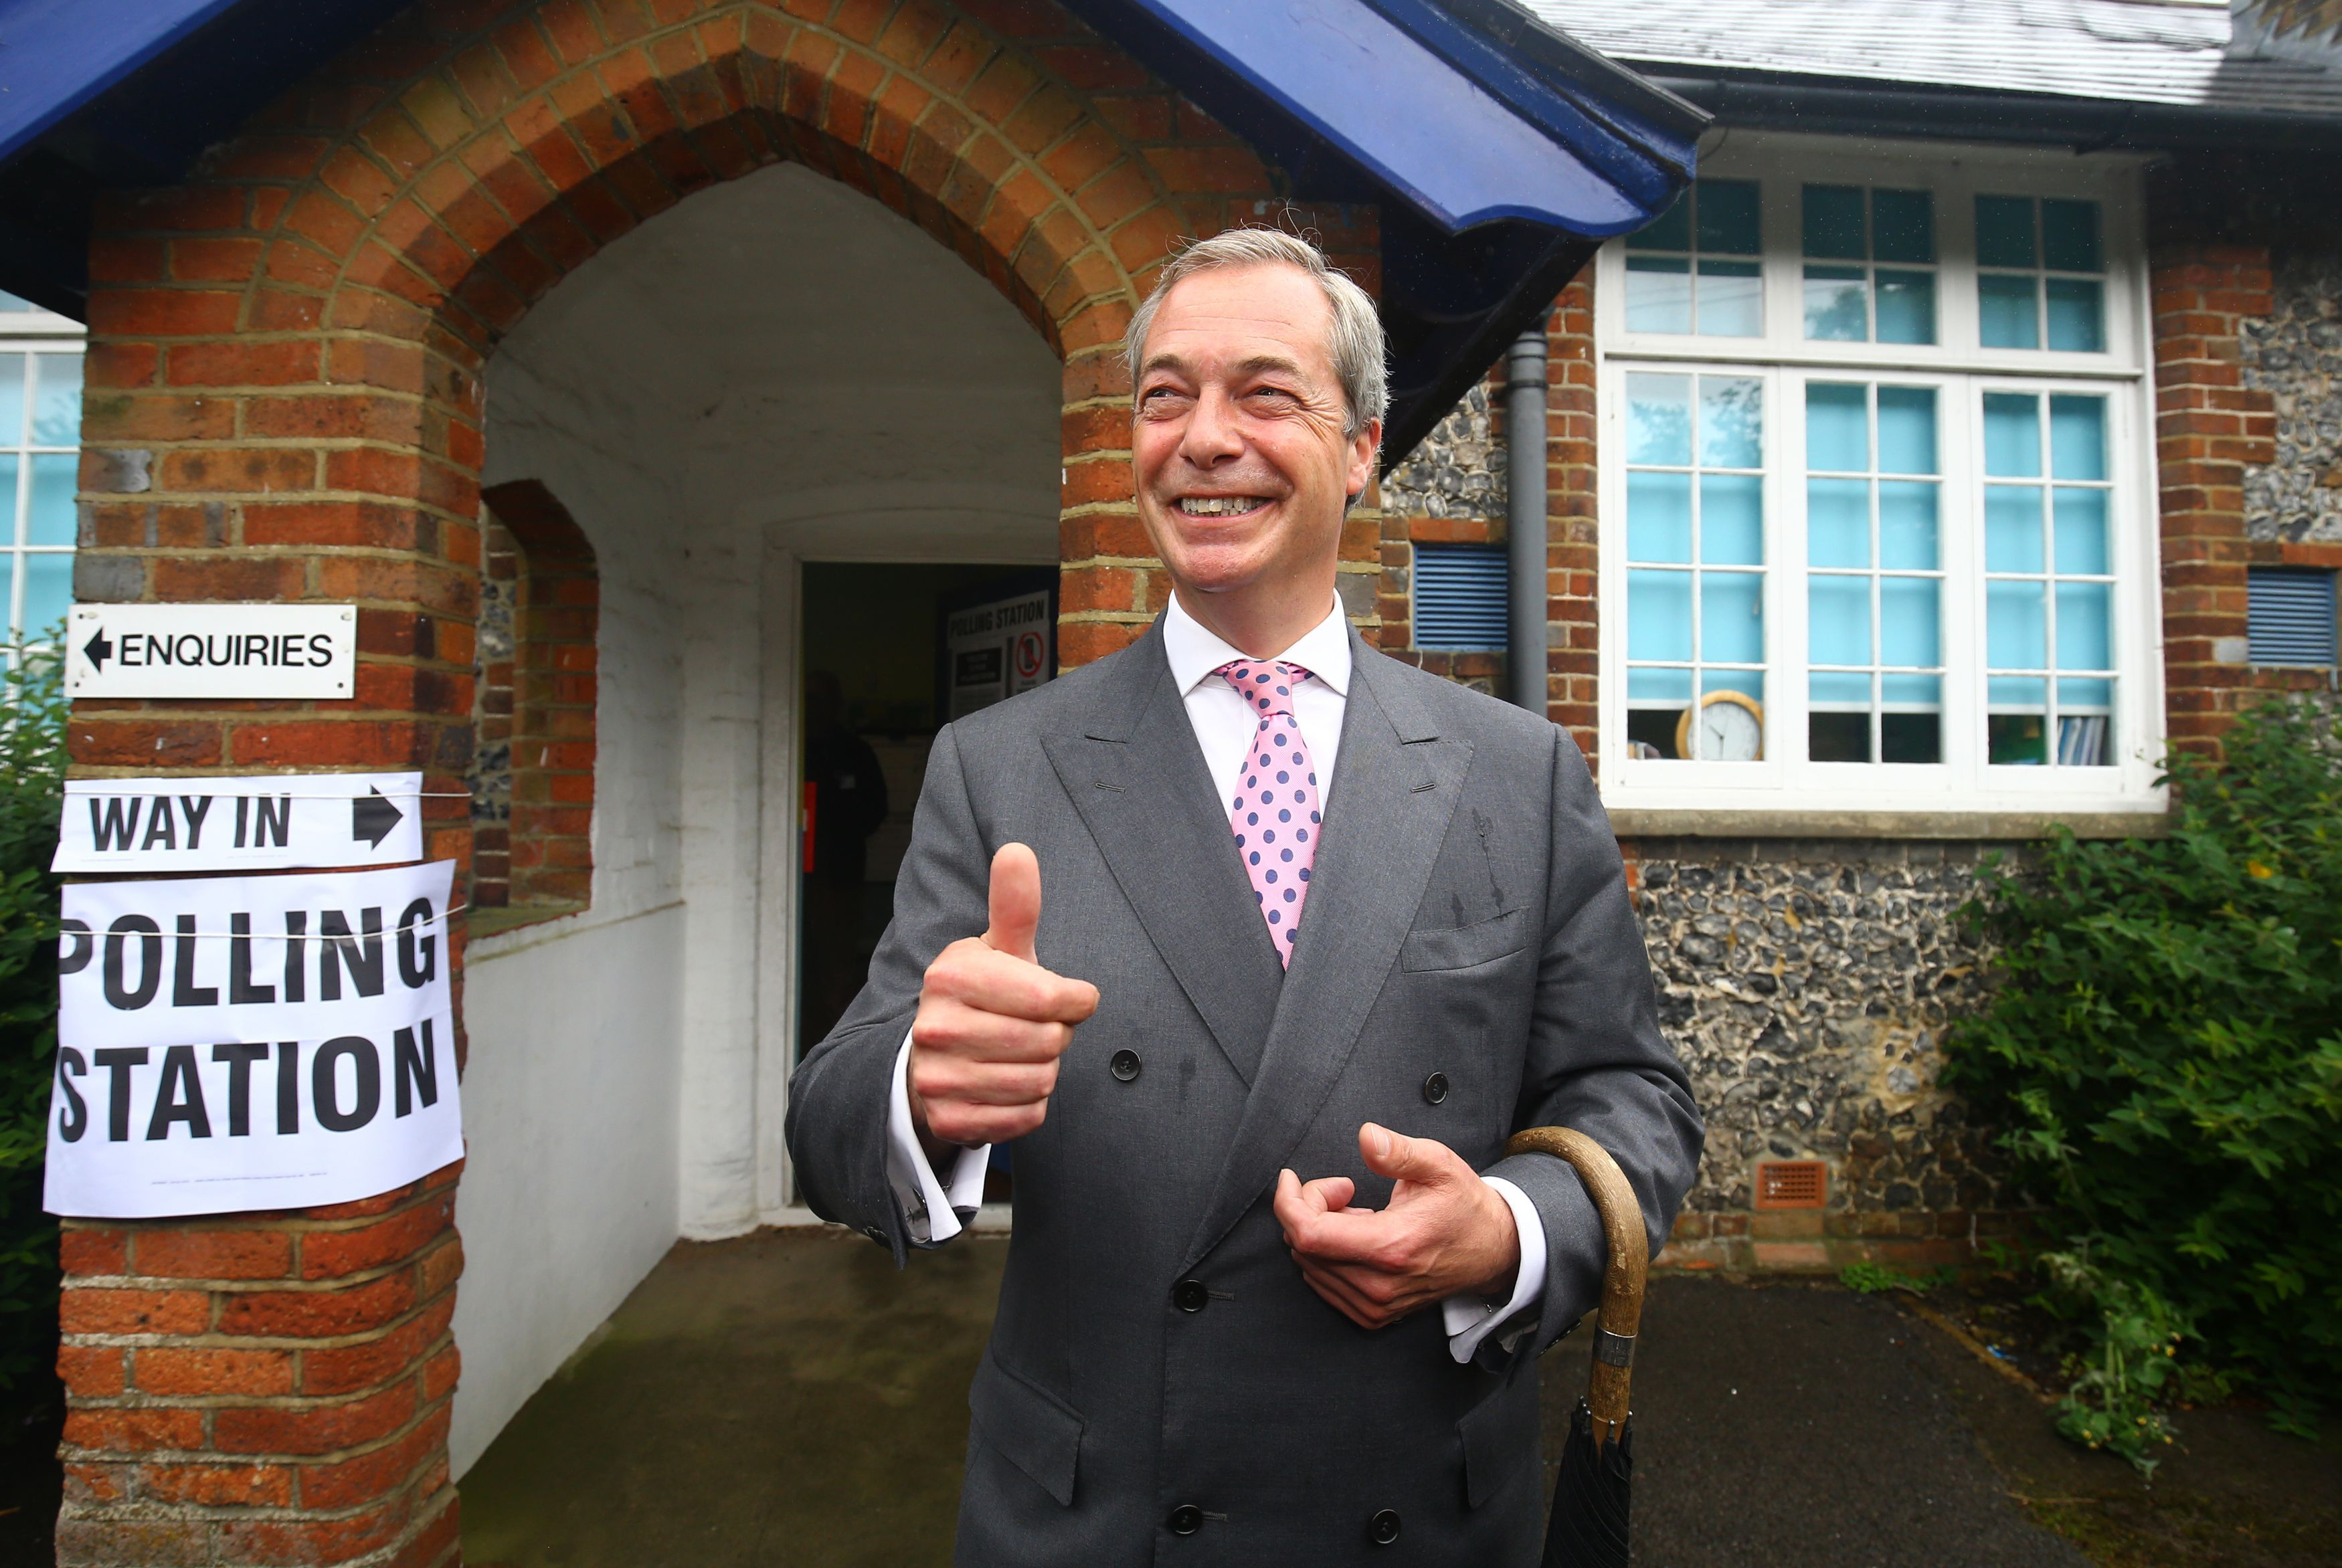 United Kingdom Independence Party leader, Nigel Farage, arrives to cast his vote in Biggin Hill, south eastern England, Thursday, June 23, 2016, as voters head to the polls across the UK in a historic referendum. Voters in Britain are deciding Thursday whether the country should remain in the European Union — a referendum that has exposed deep divisions over issues of sovereignty and national identity. (Gareth Fuller/PA via AP) UNITED KINGDOM OUT NO SALES NO ARCHIVE